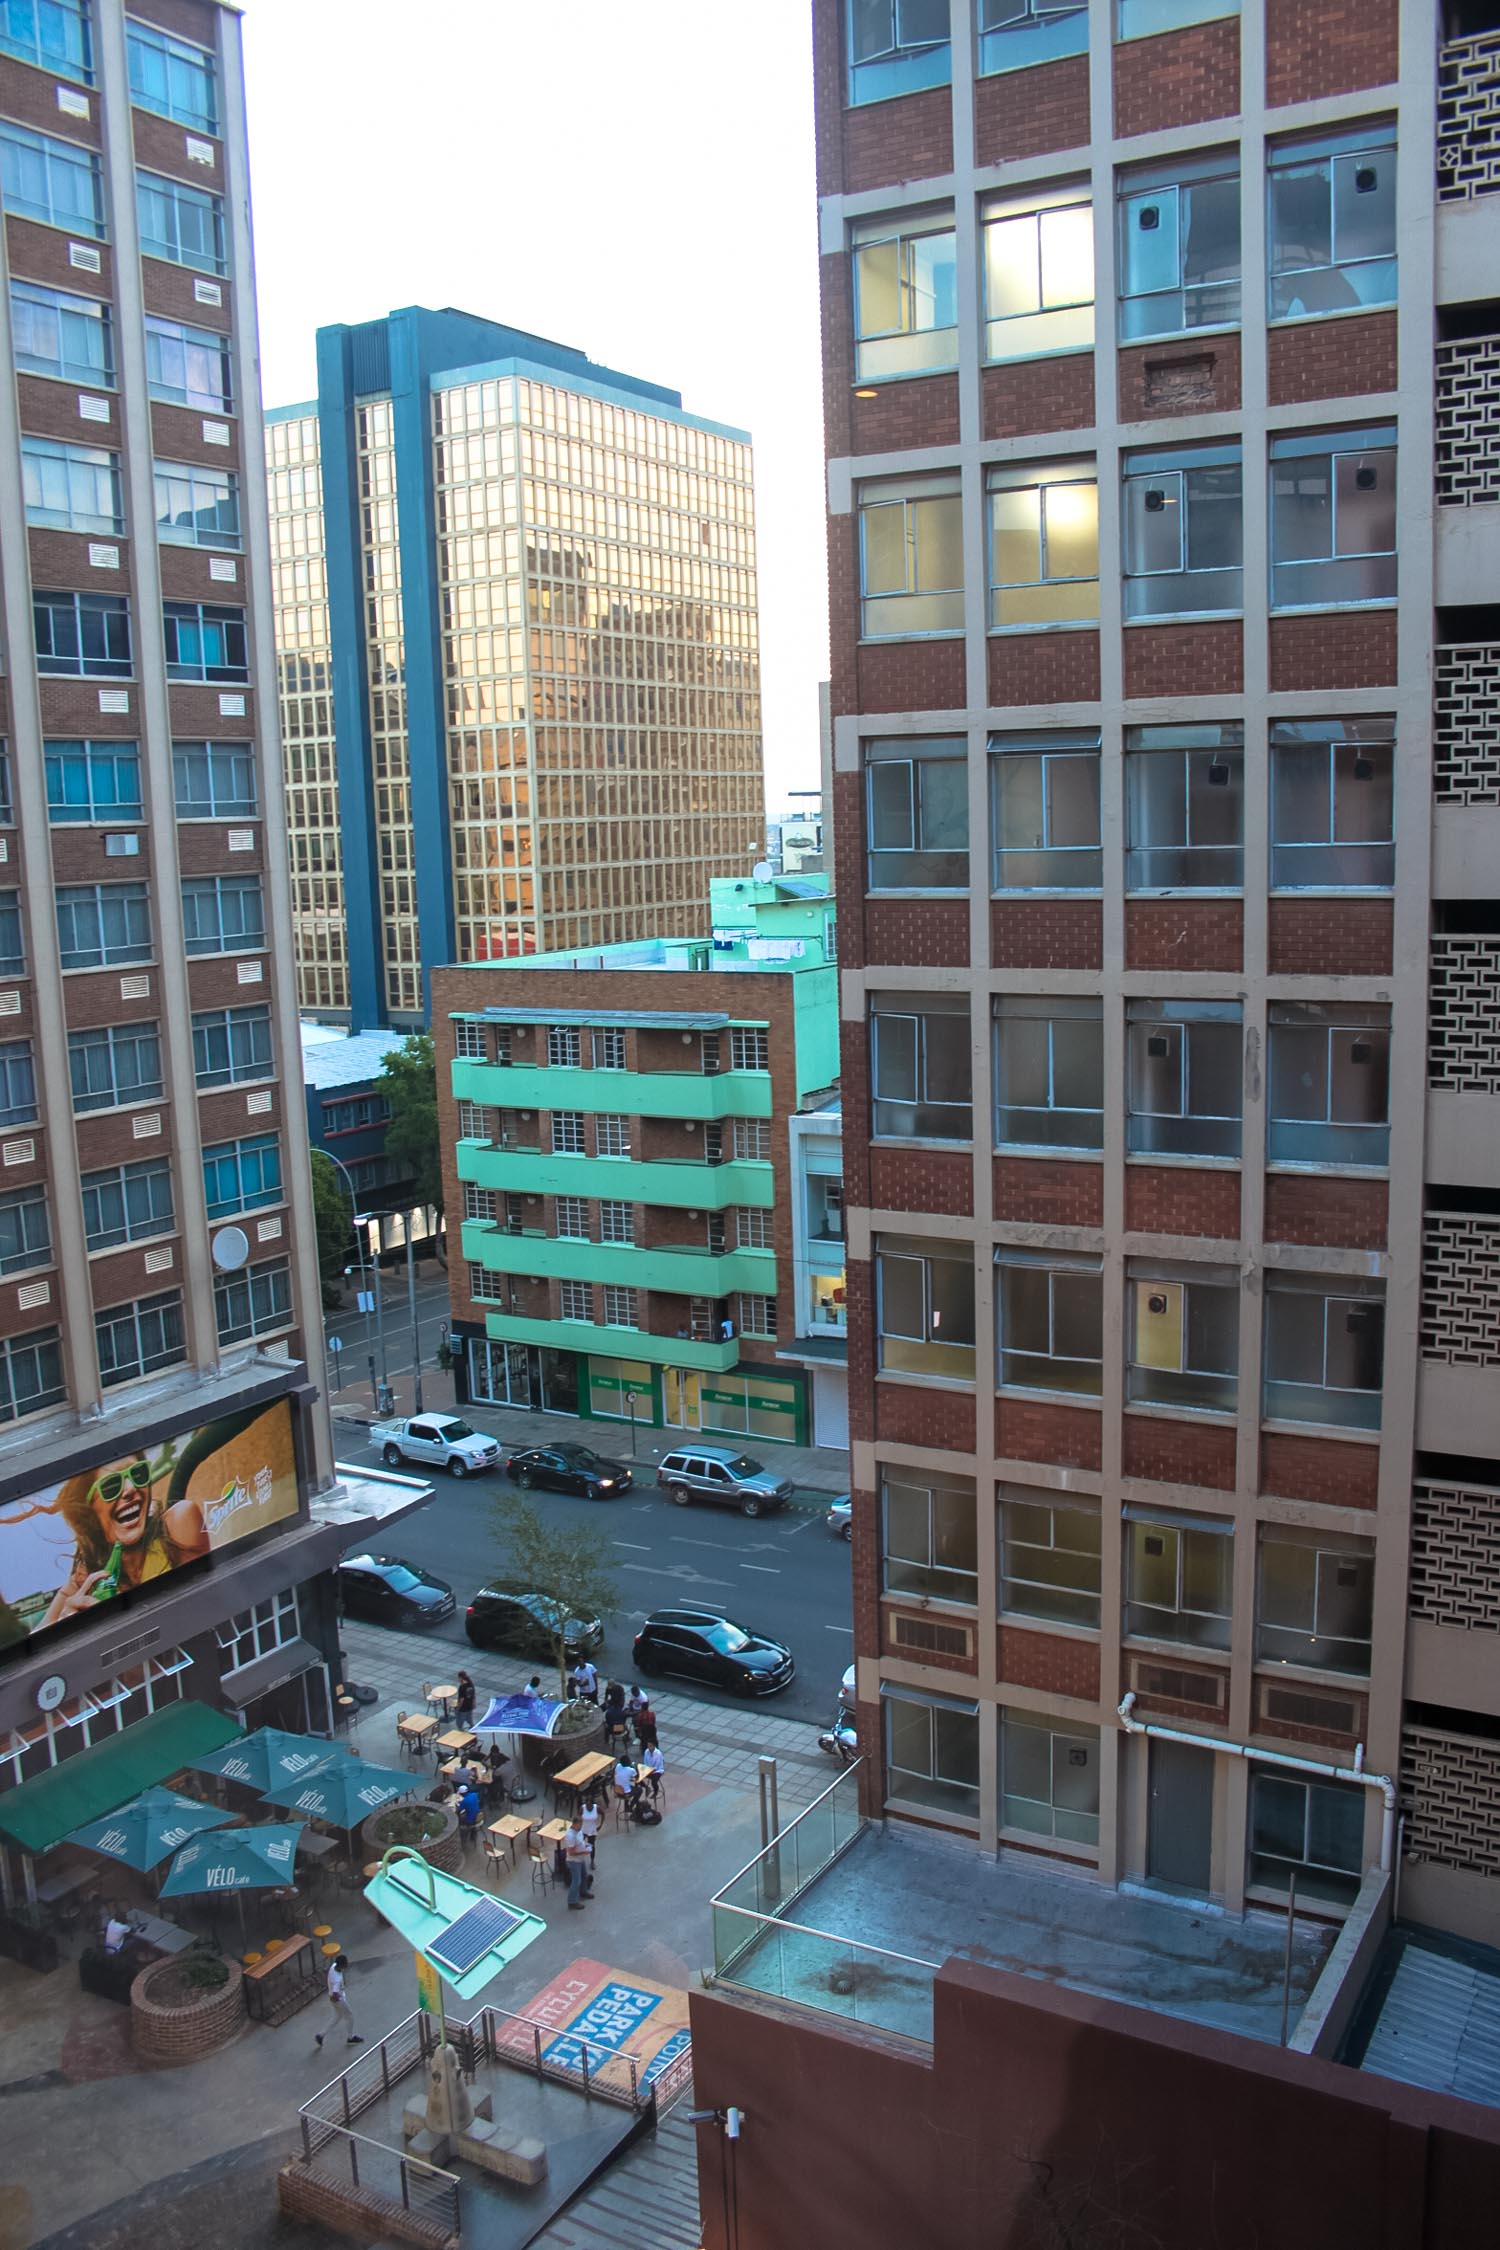 Review: Once in Joburg - Room View